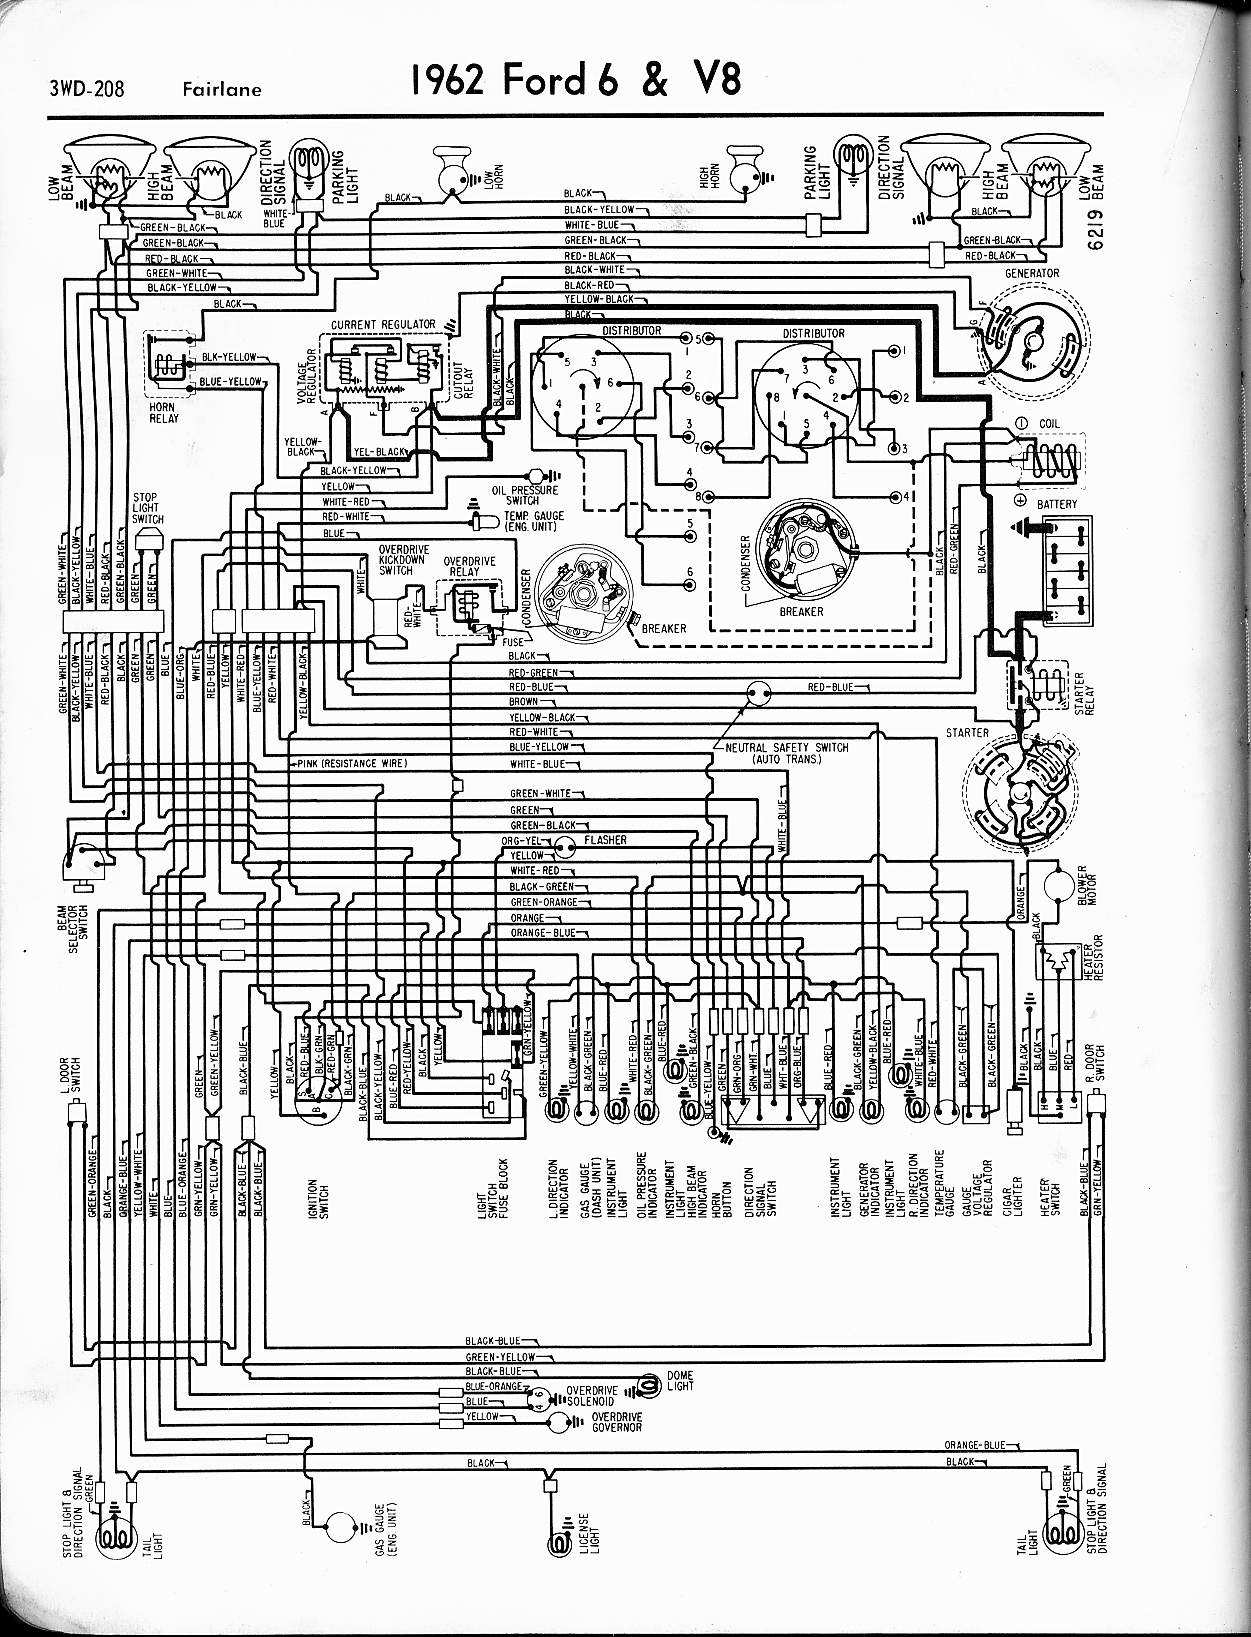 1962 Ford Fairlane Wiring Diagram Opinions About 1964 57 65 Diagrams 1966 F100 1965